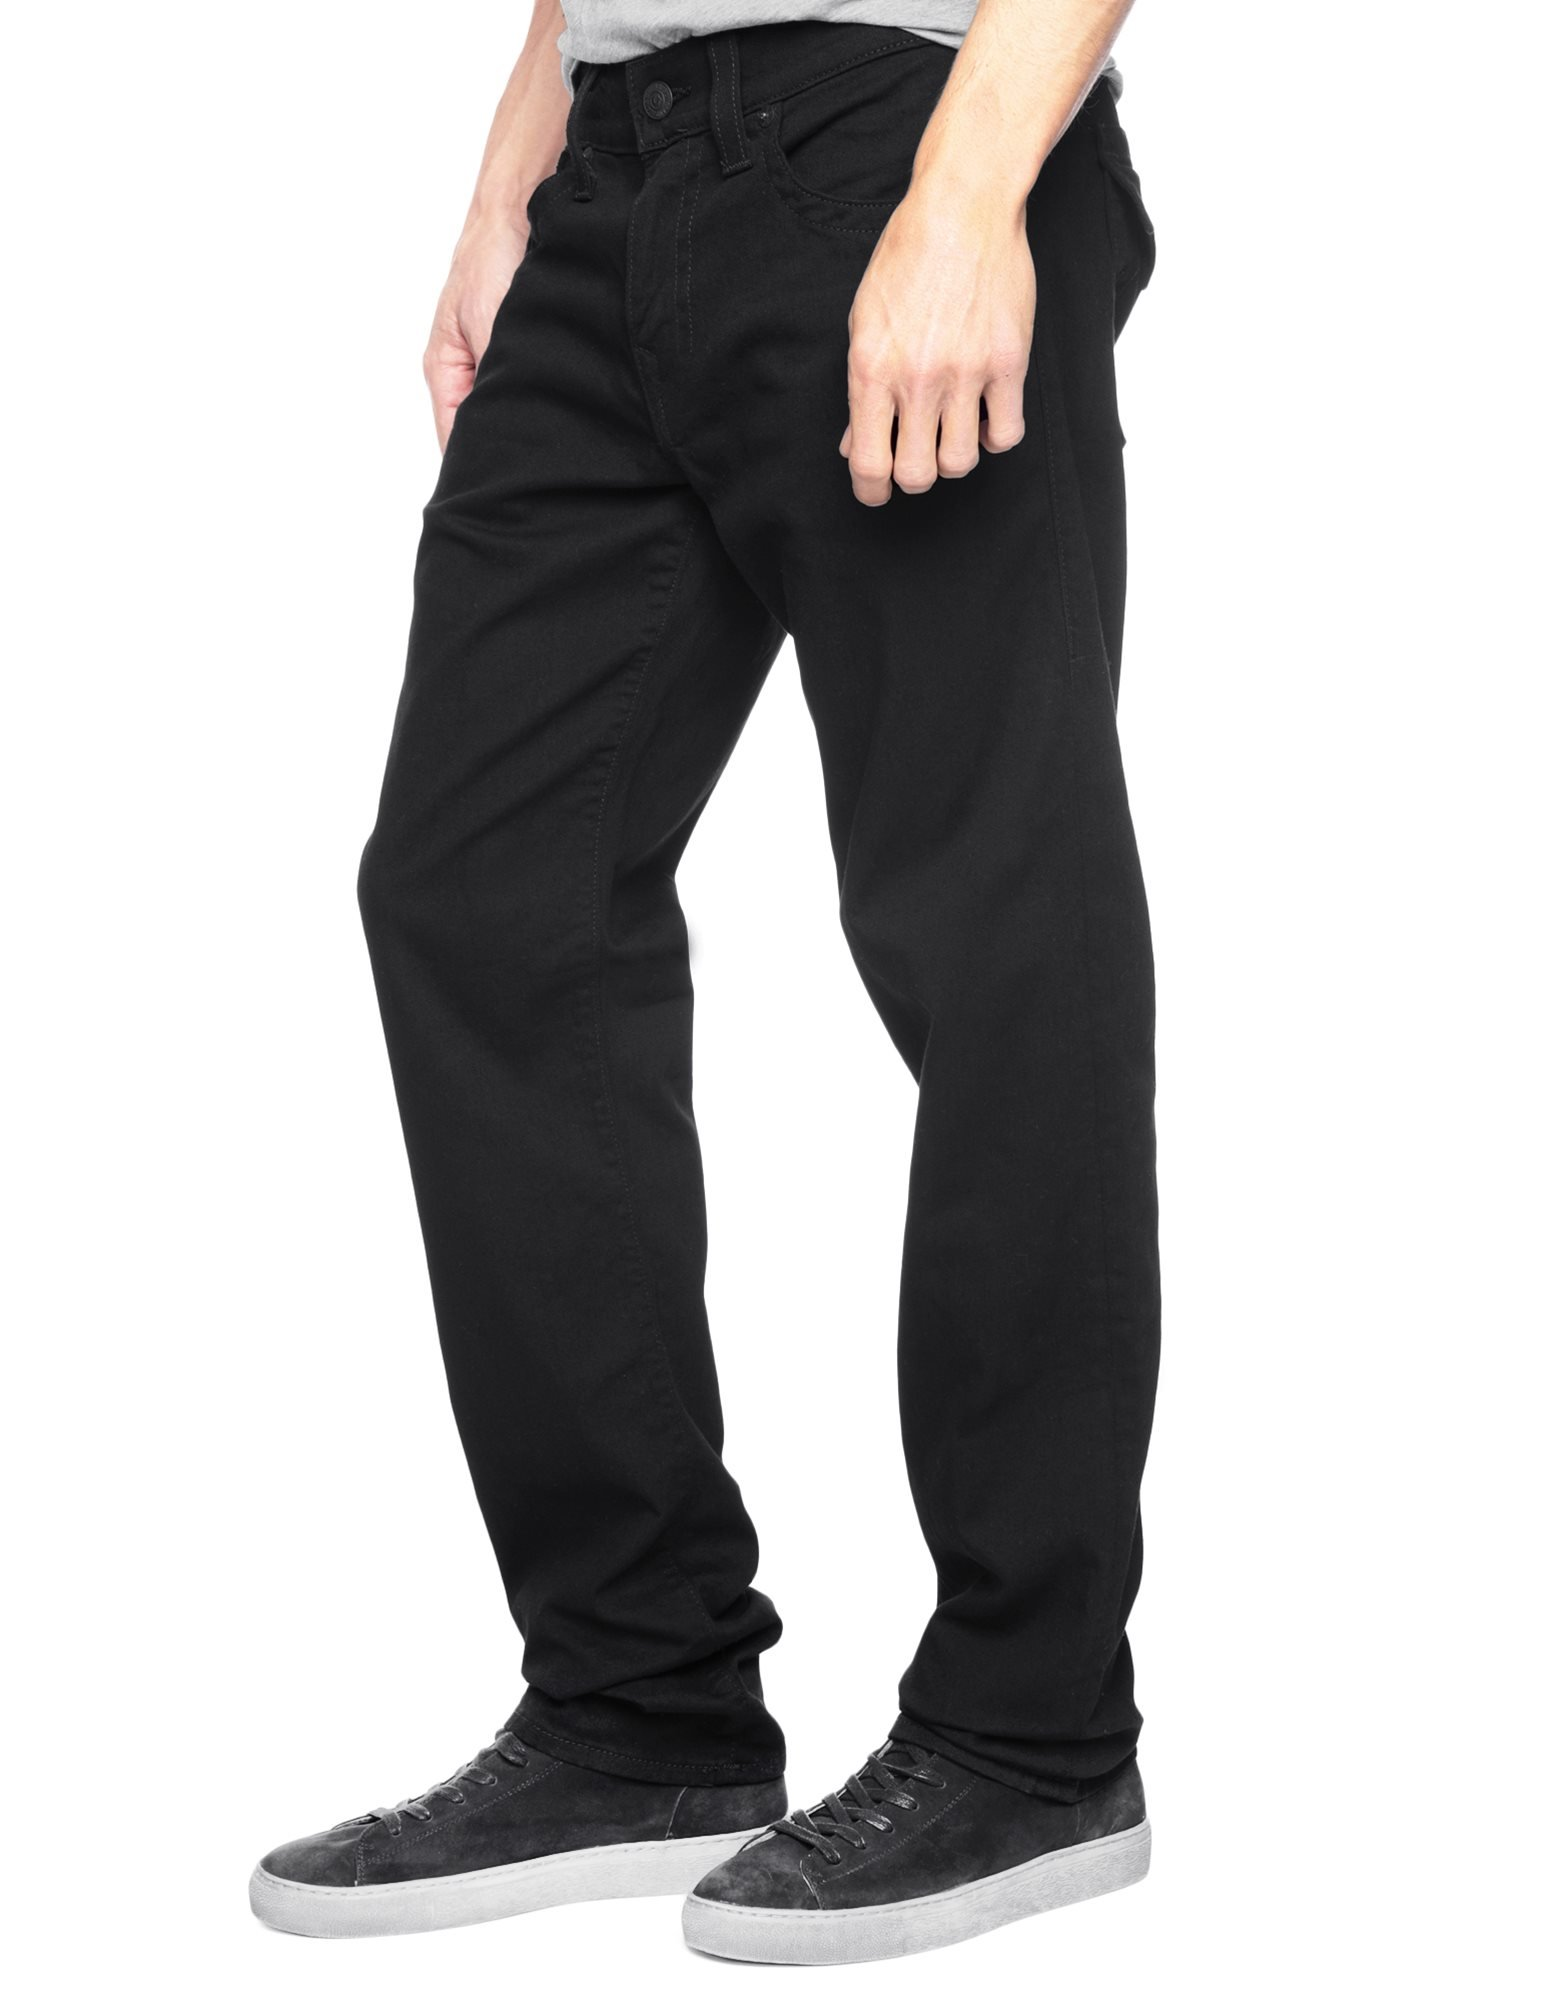 True Religion Men's Geno With Flap Relaxed Slim Jean In Midnight, Midnight, 28